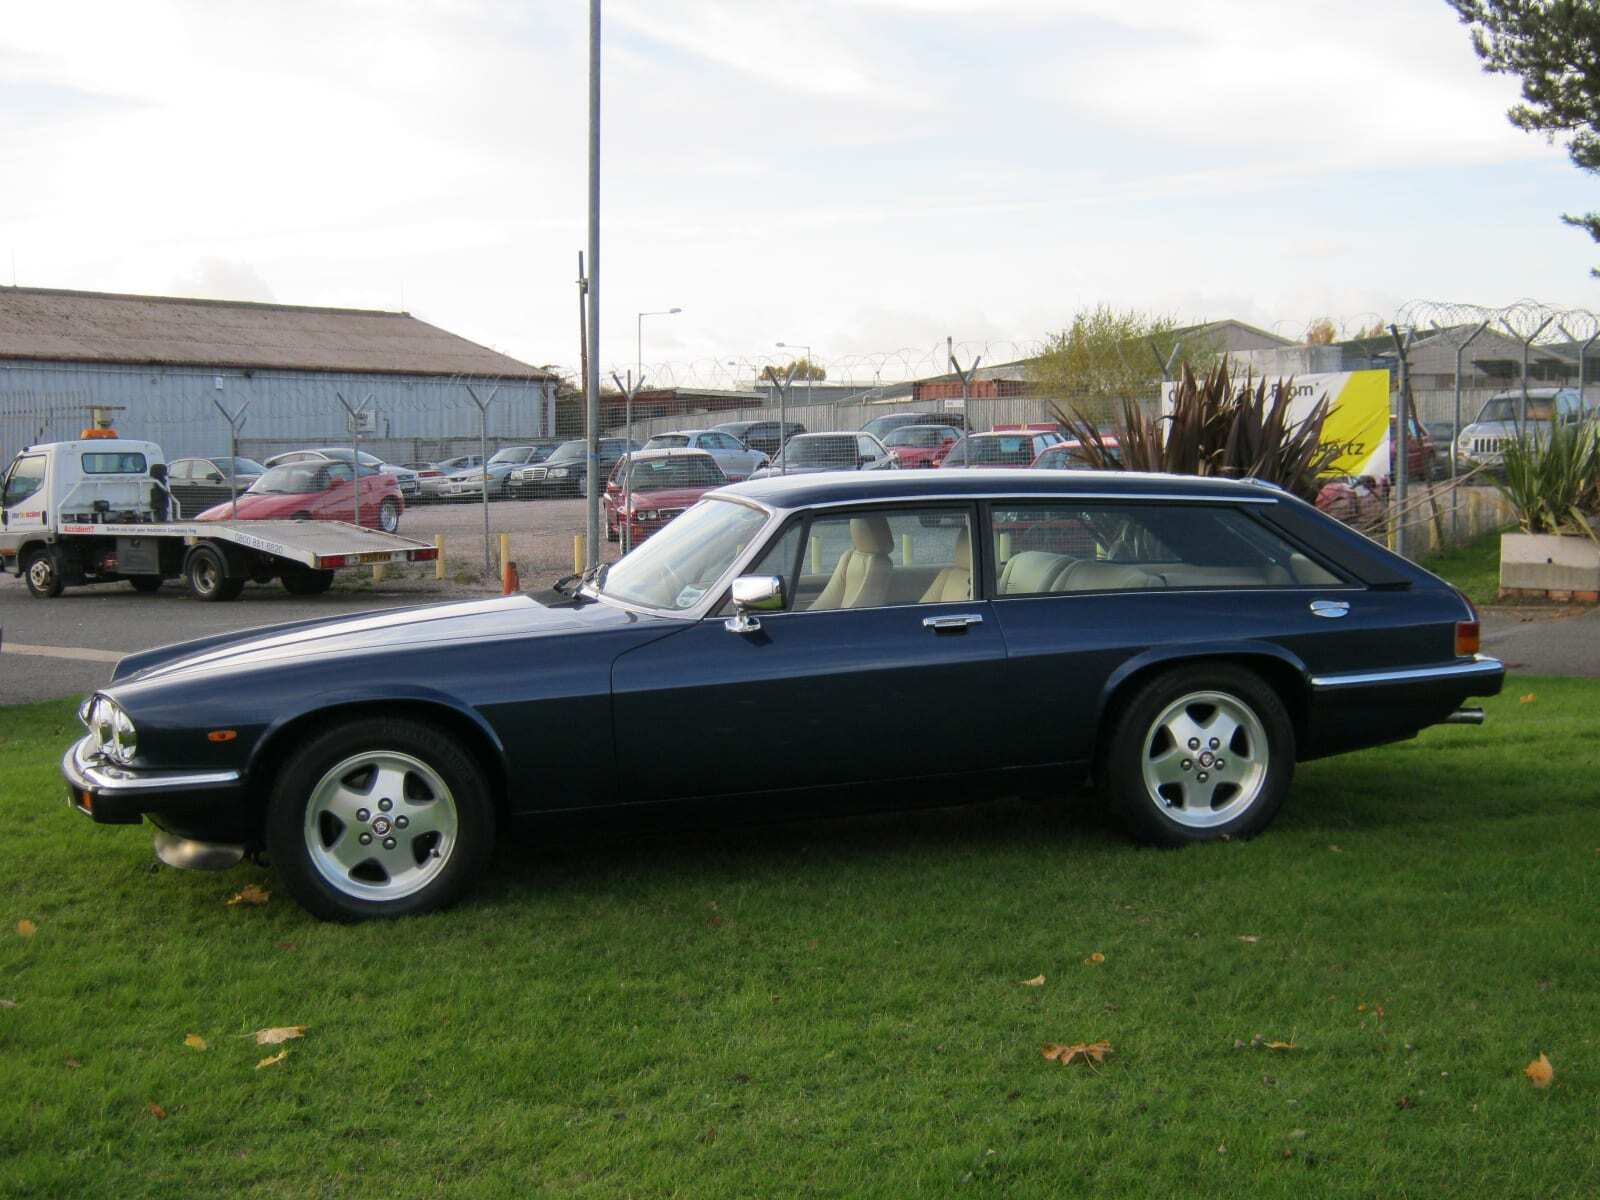 Lynx Eventer 5 3 Litre V12 Manual Xjs Amp Xj From Kwe Cars